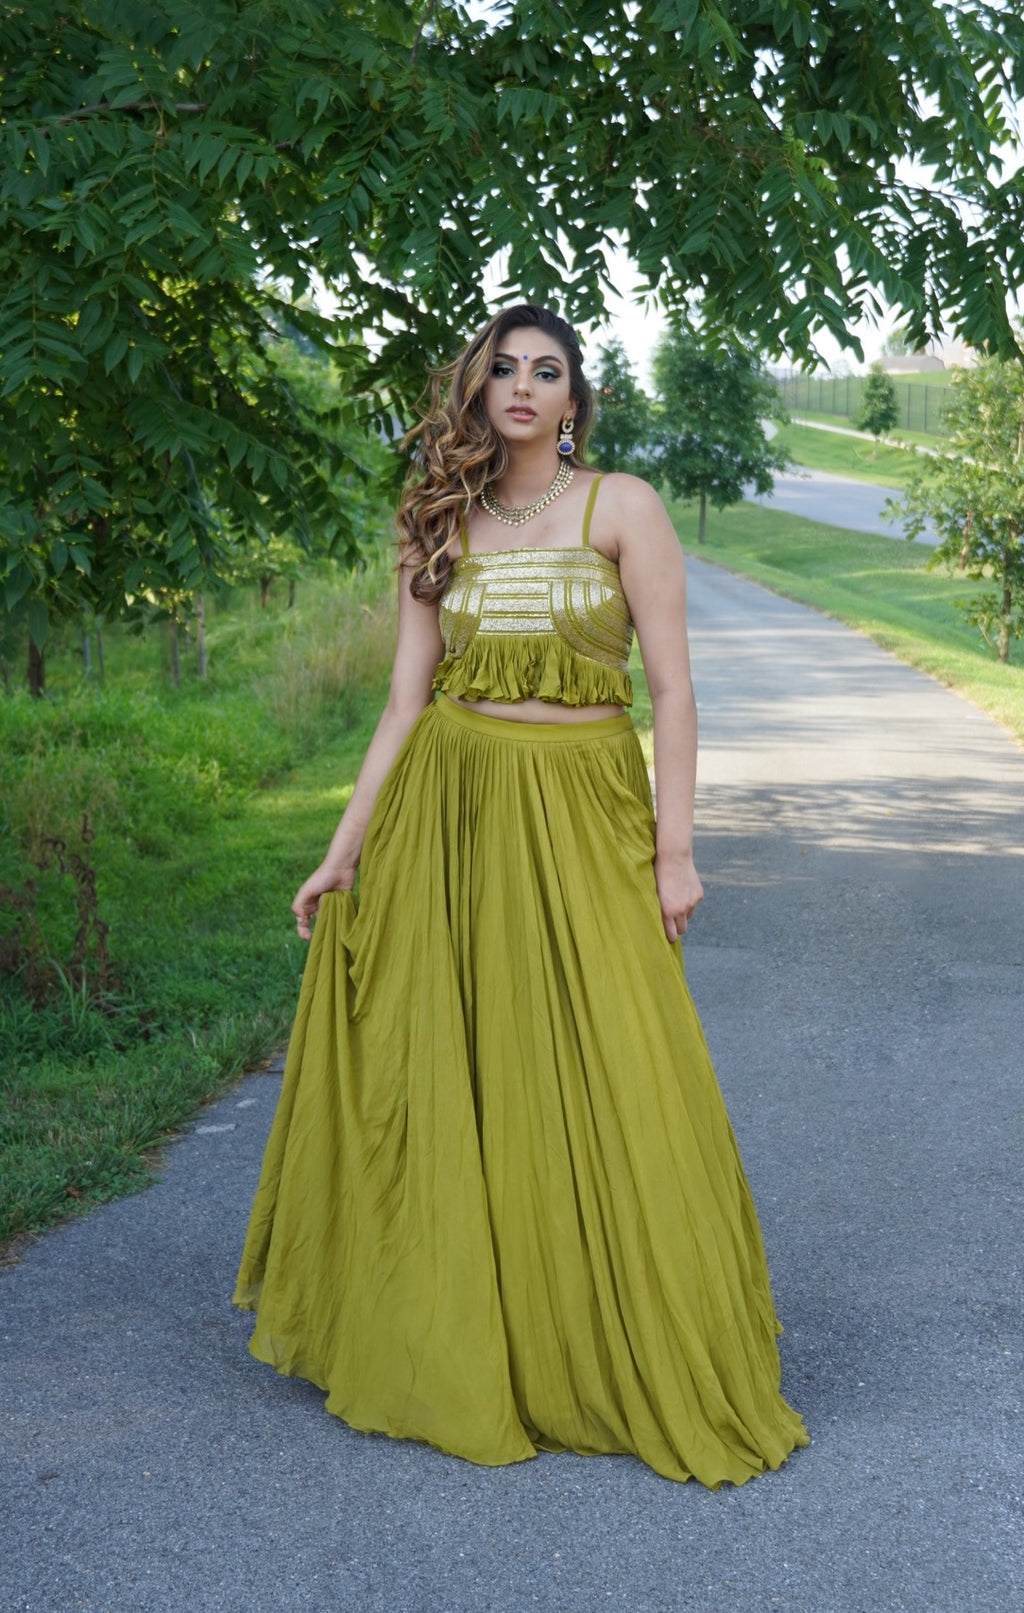 Trendy Leaf Green Indo-Western Crop Top Skirt For Mehendi/Sangeet - Custom Made Bridesmaid Outfits by Indian Designer Sushma Patel